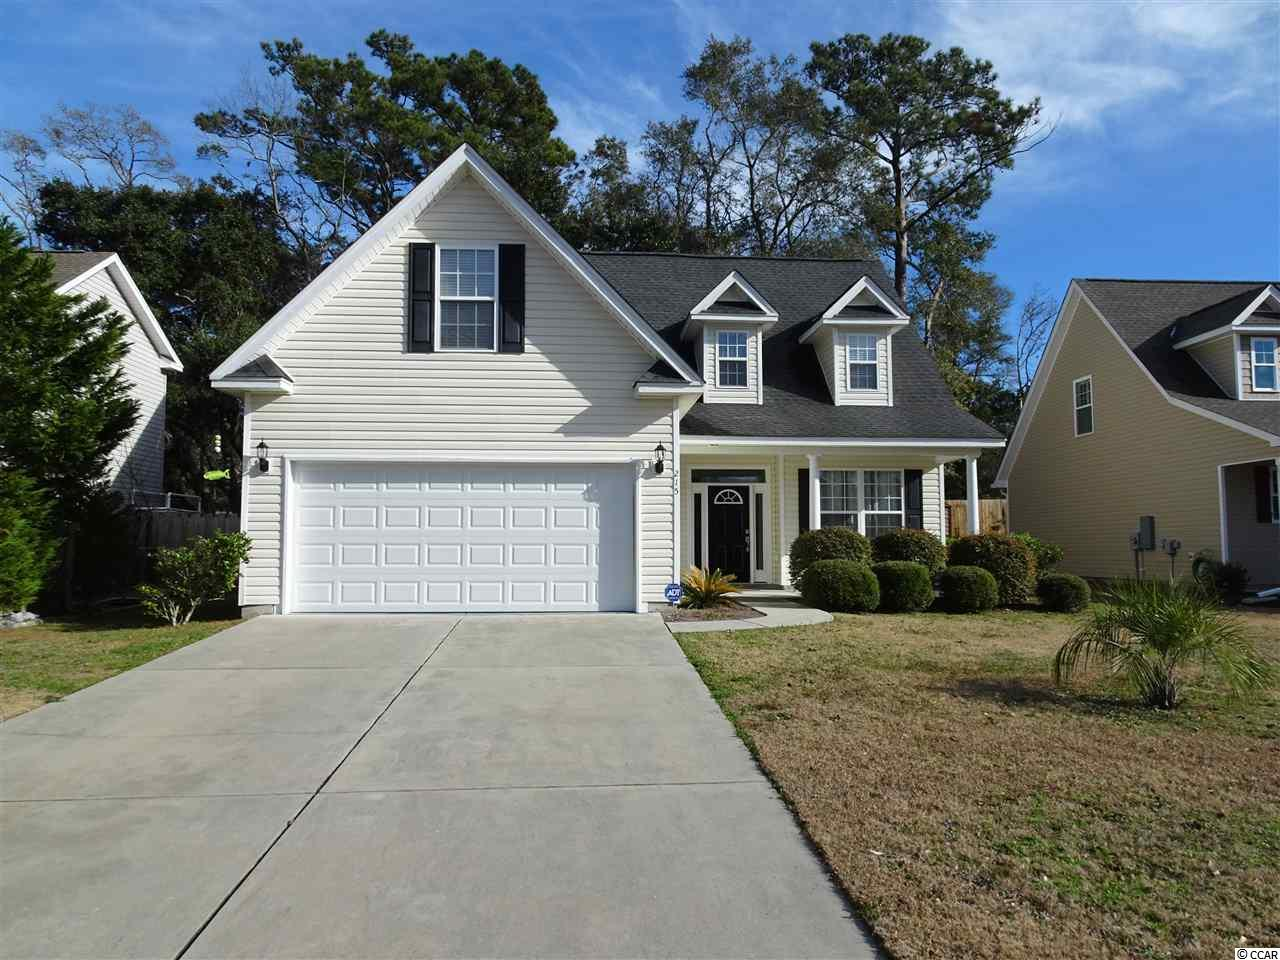 Single Family Home for Sale at 215 Chesapeake Lane 215 Chesapeake Lane Murrells Inlet, South Carolina 29576 United States